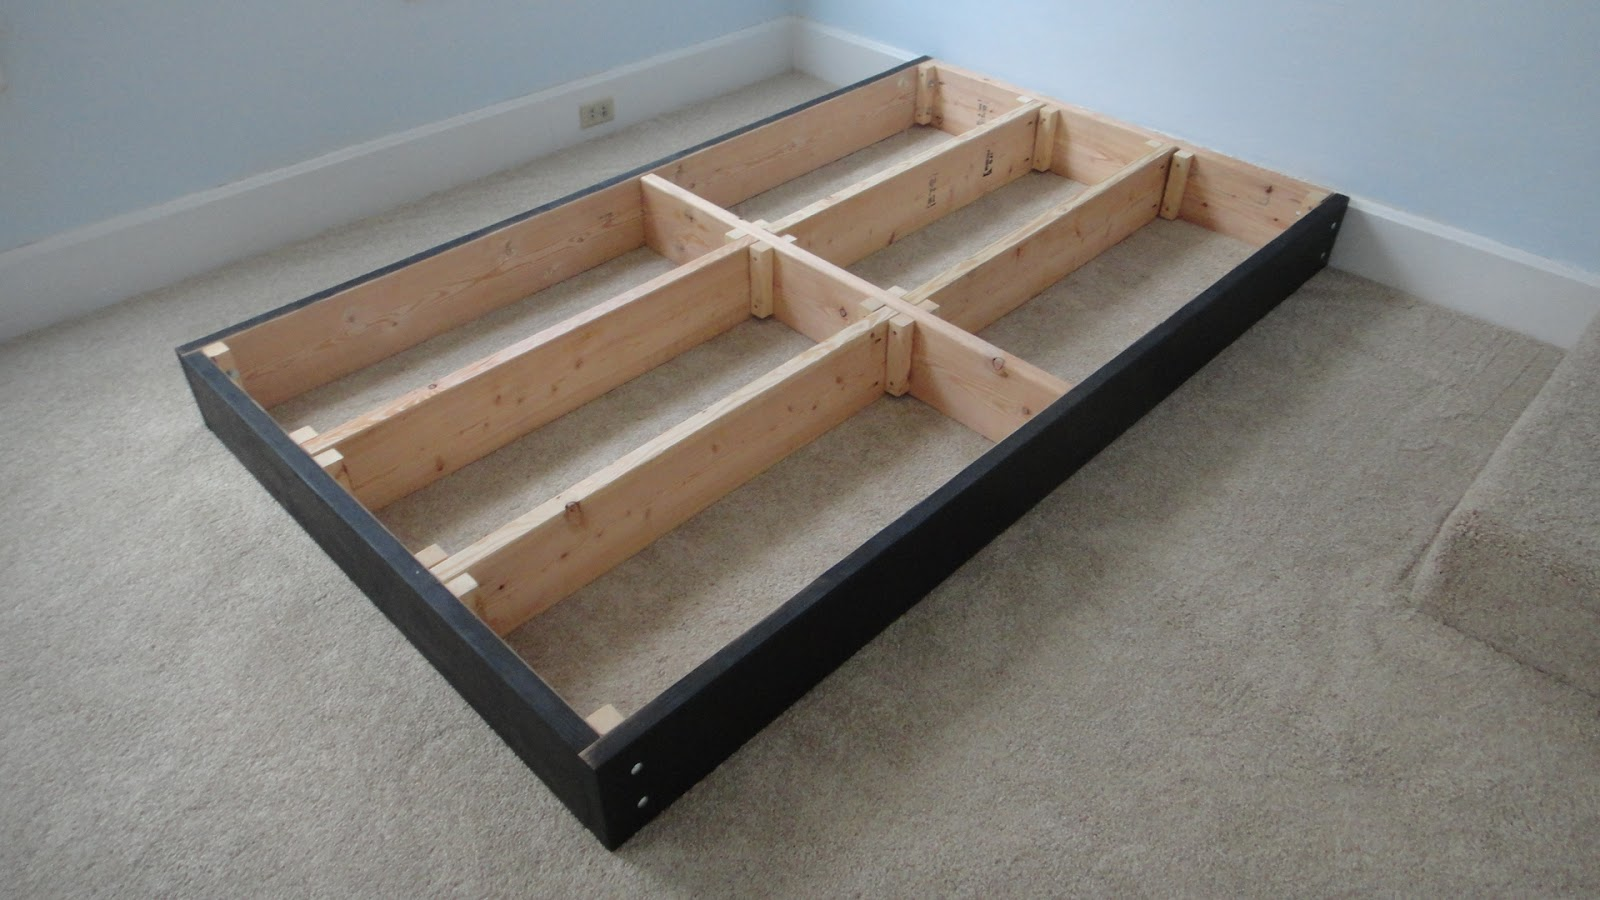 ... Tinkers Workshop: Two More Steps Forward On The Platform Bed Project